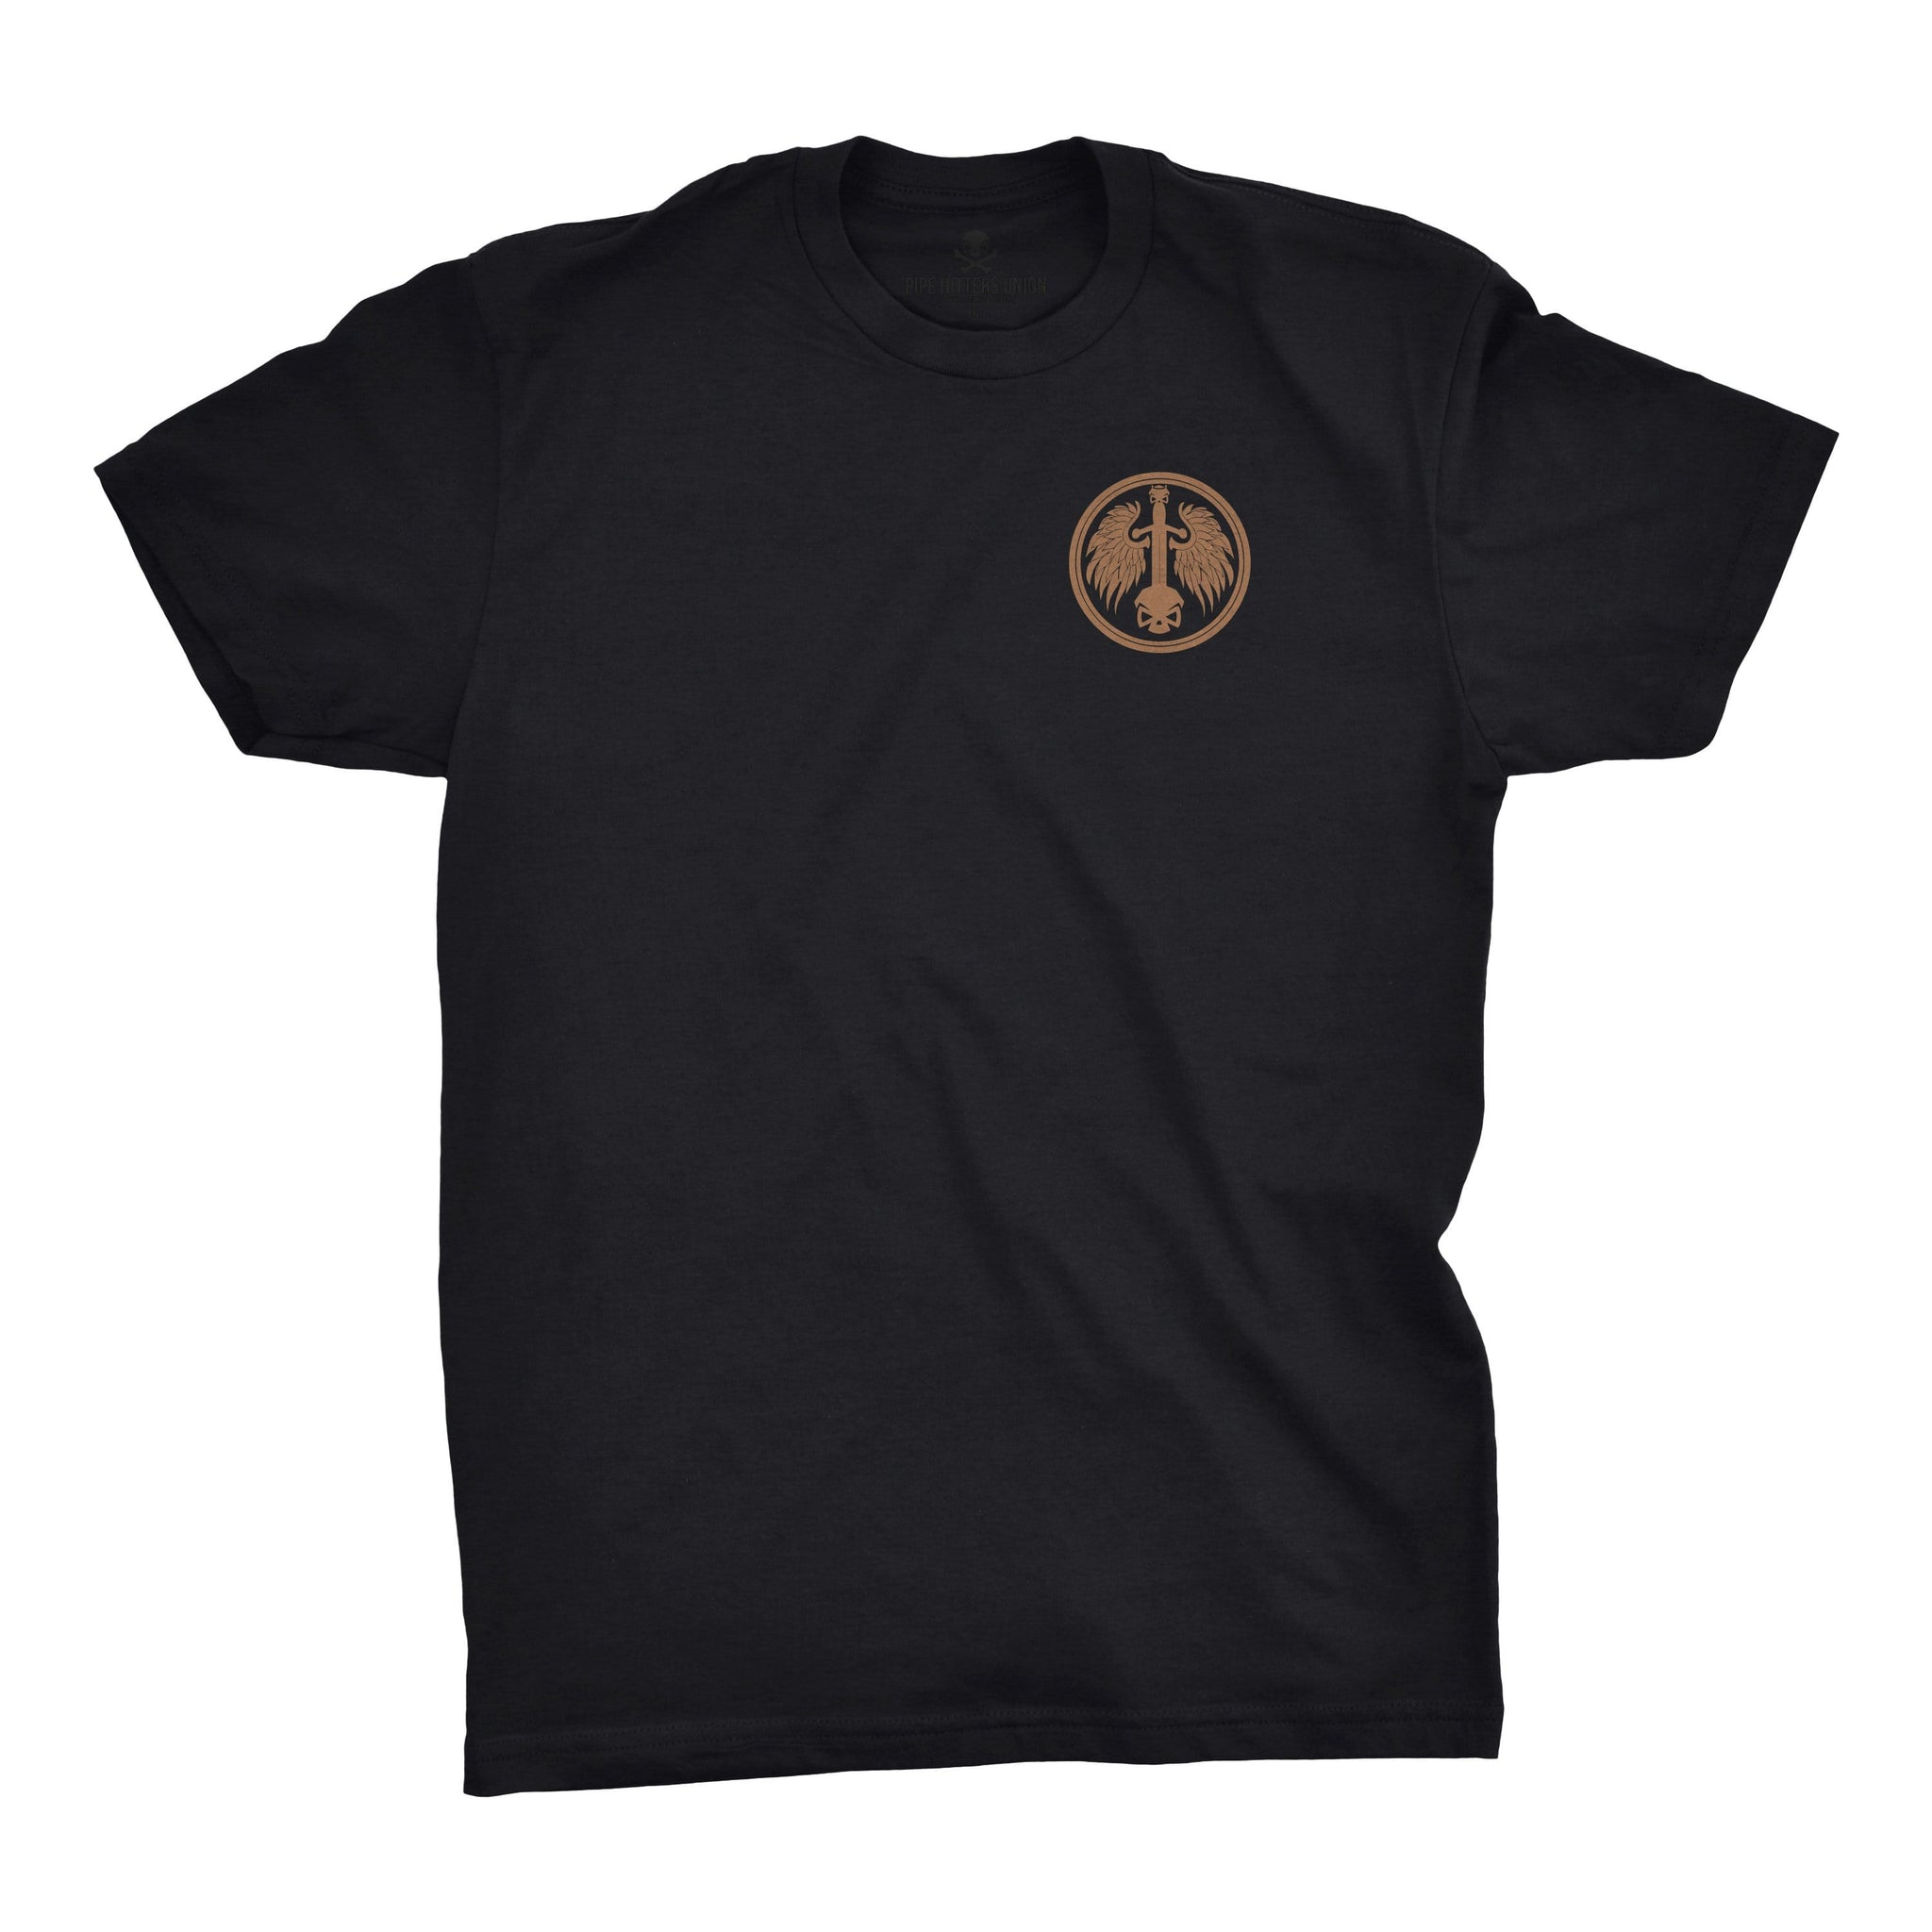 PHUMC Guardians Chapter Tee - Pipe Hitters Union